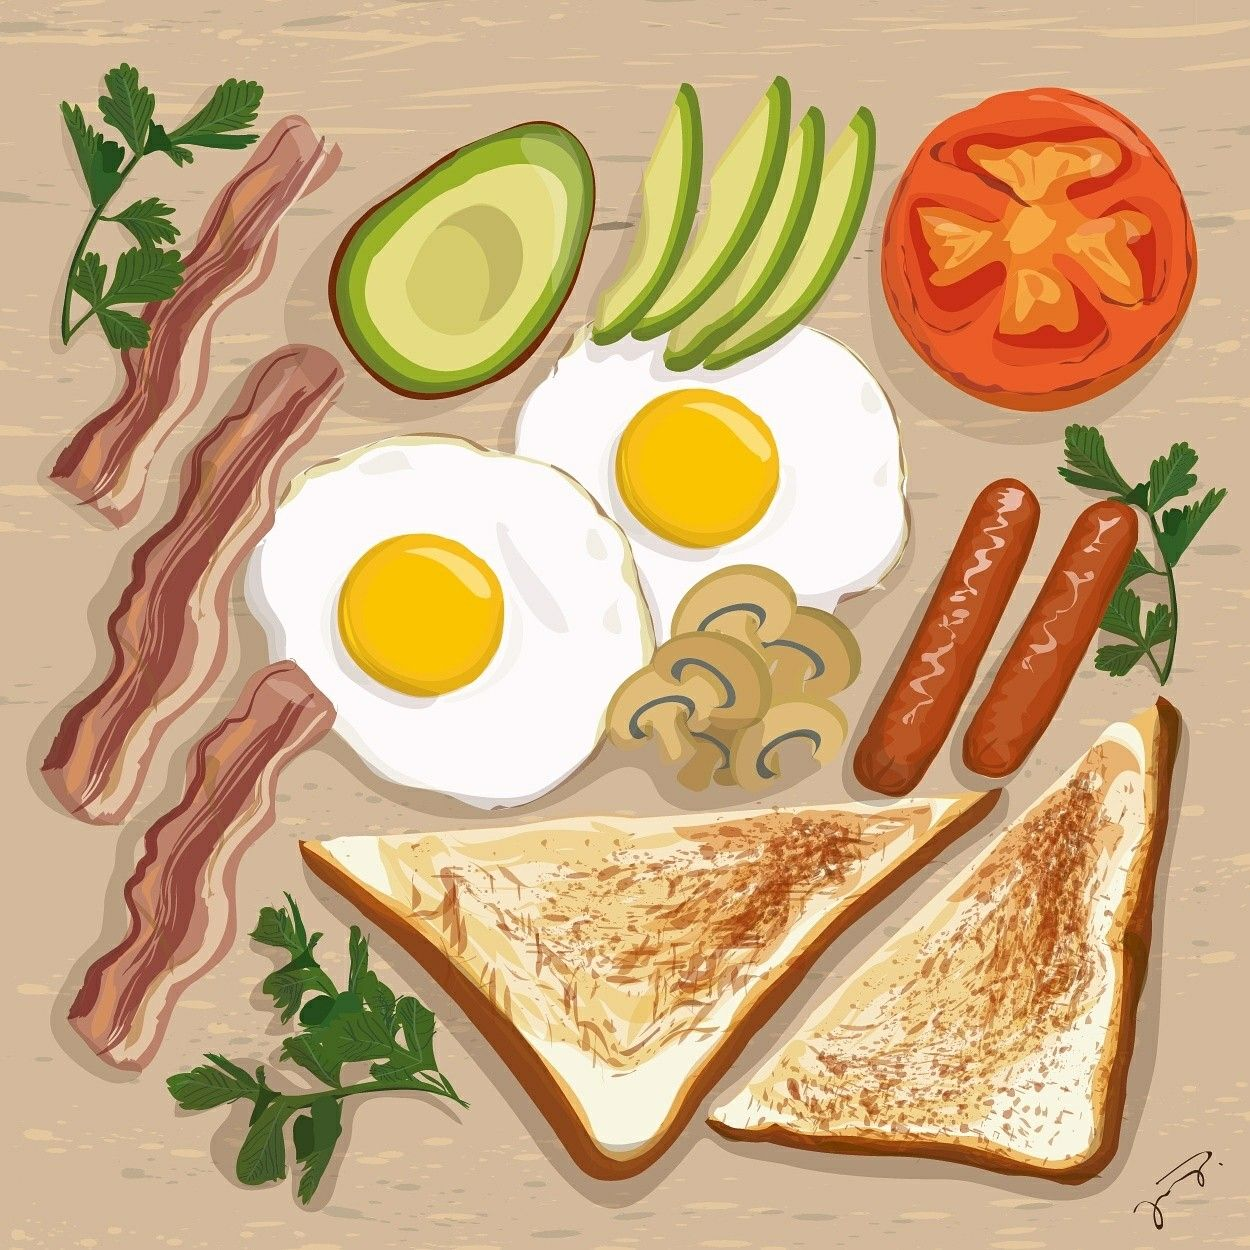 Breakfast All Day All Day Breakfast Illustration Food Inspiration Food Food